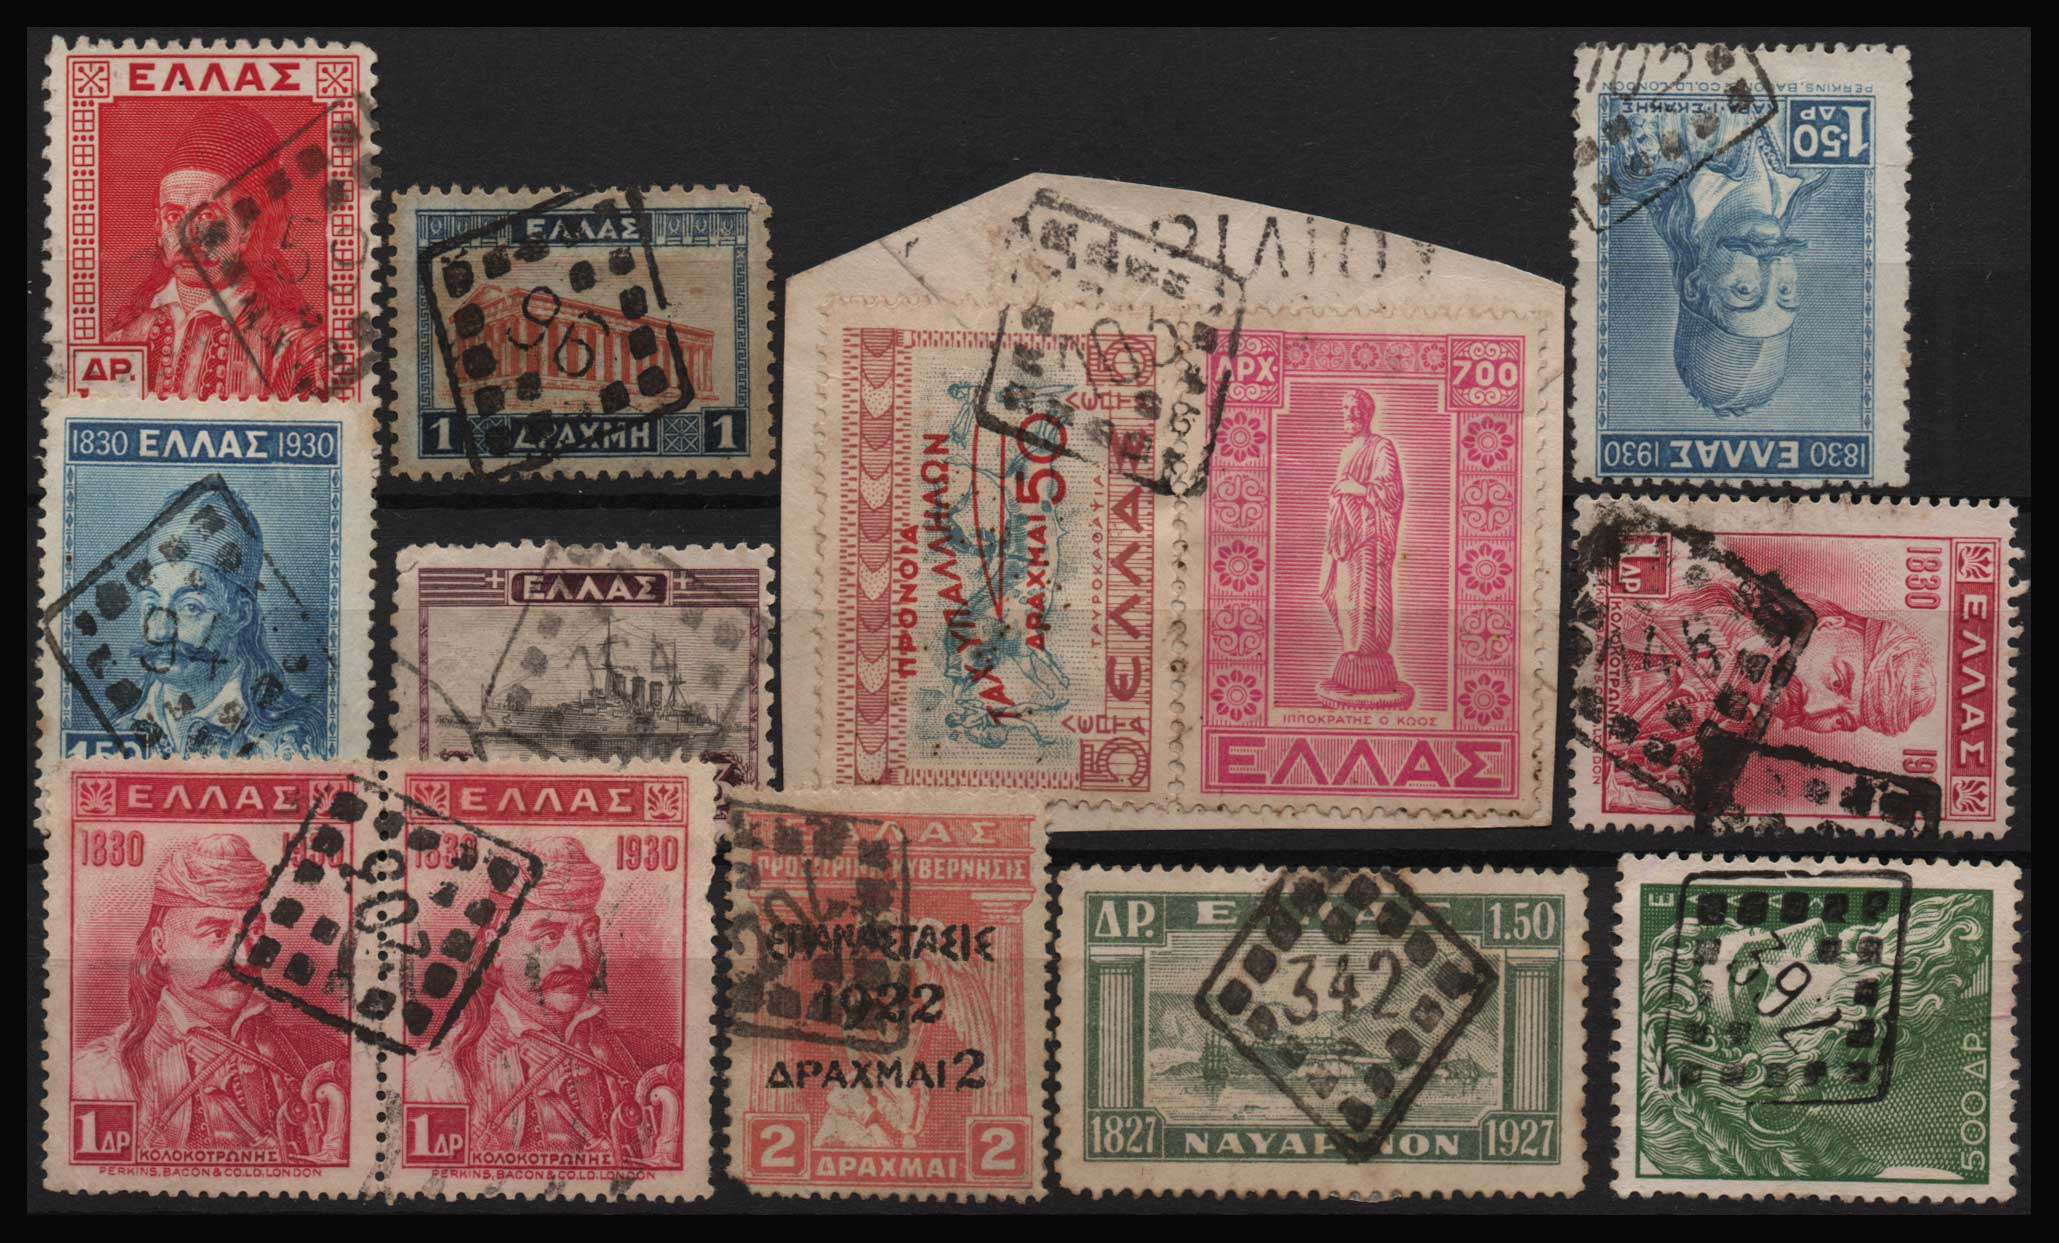 Lot 1453 - - CANCELLATIONS cancellations -  Athens Auctions Public Auction 89 General Stamp Sale